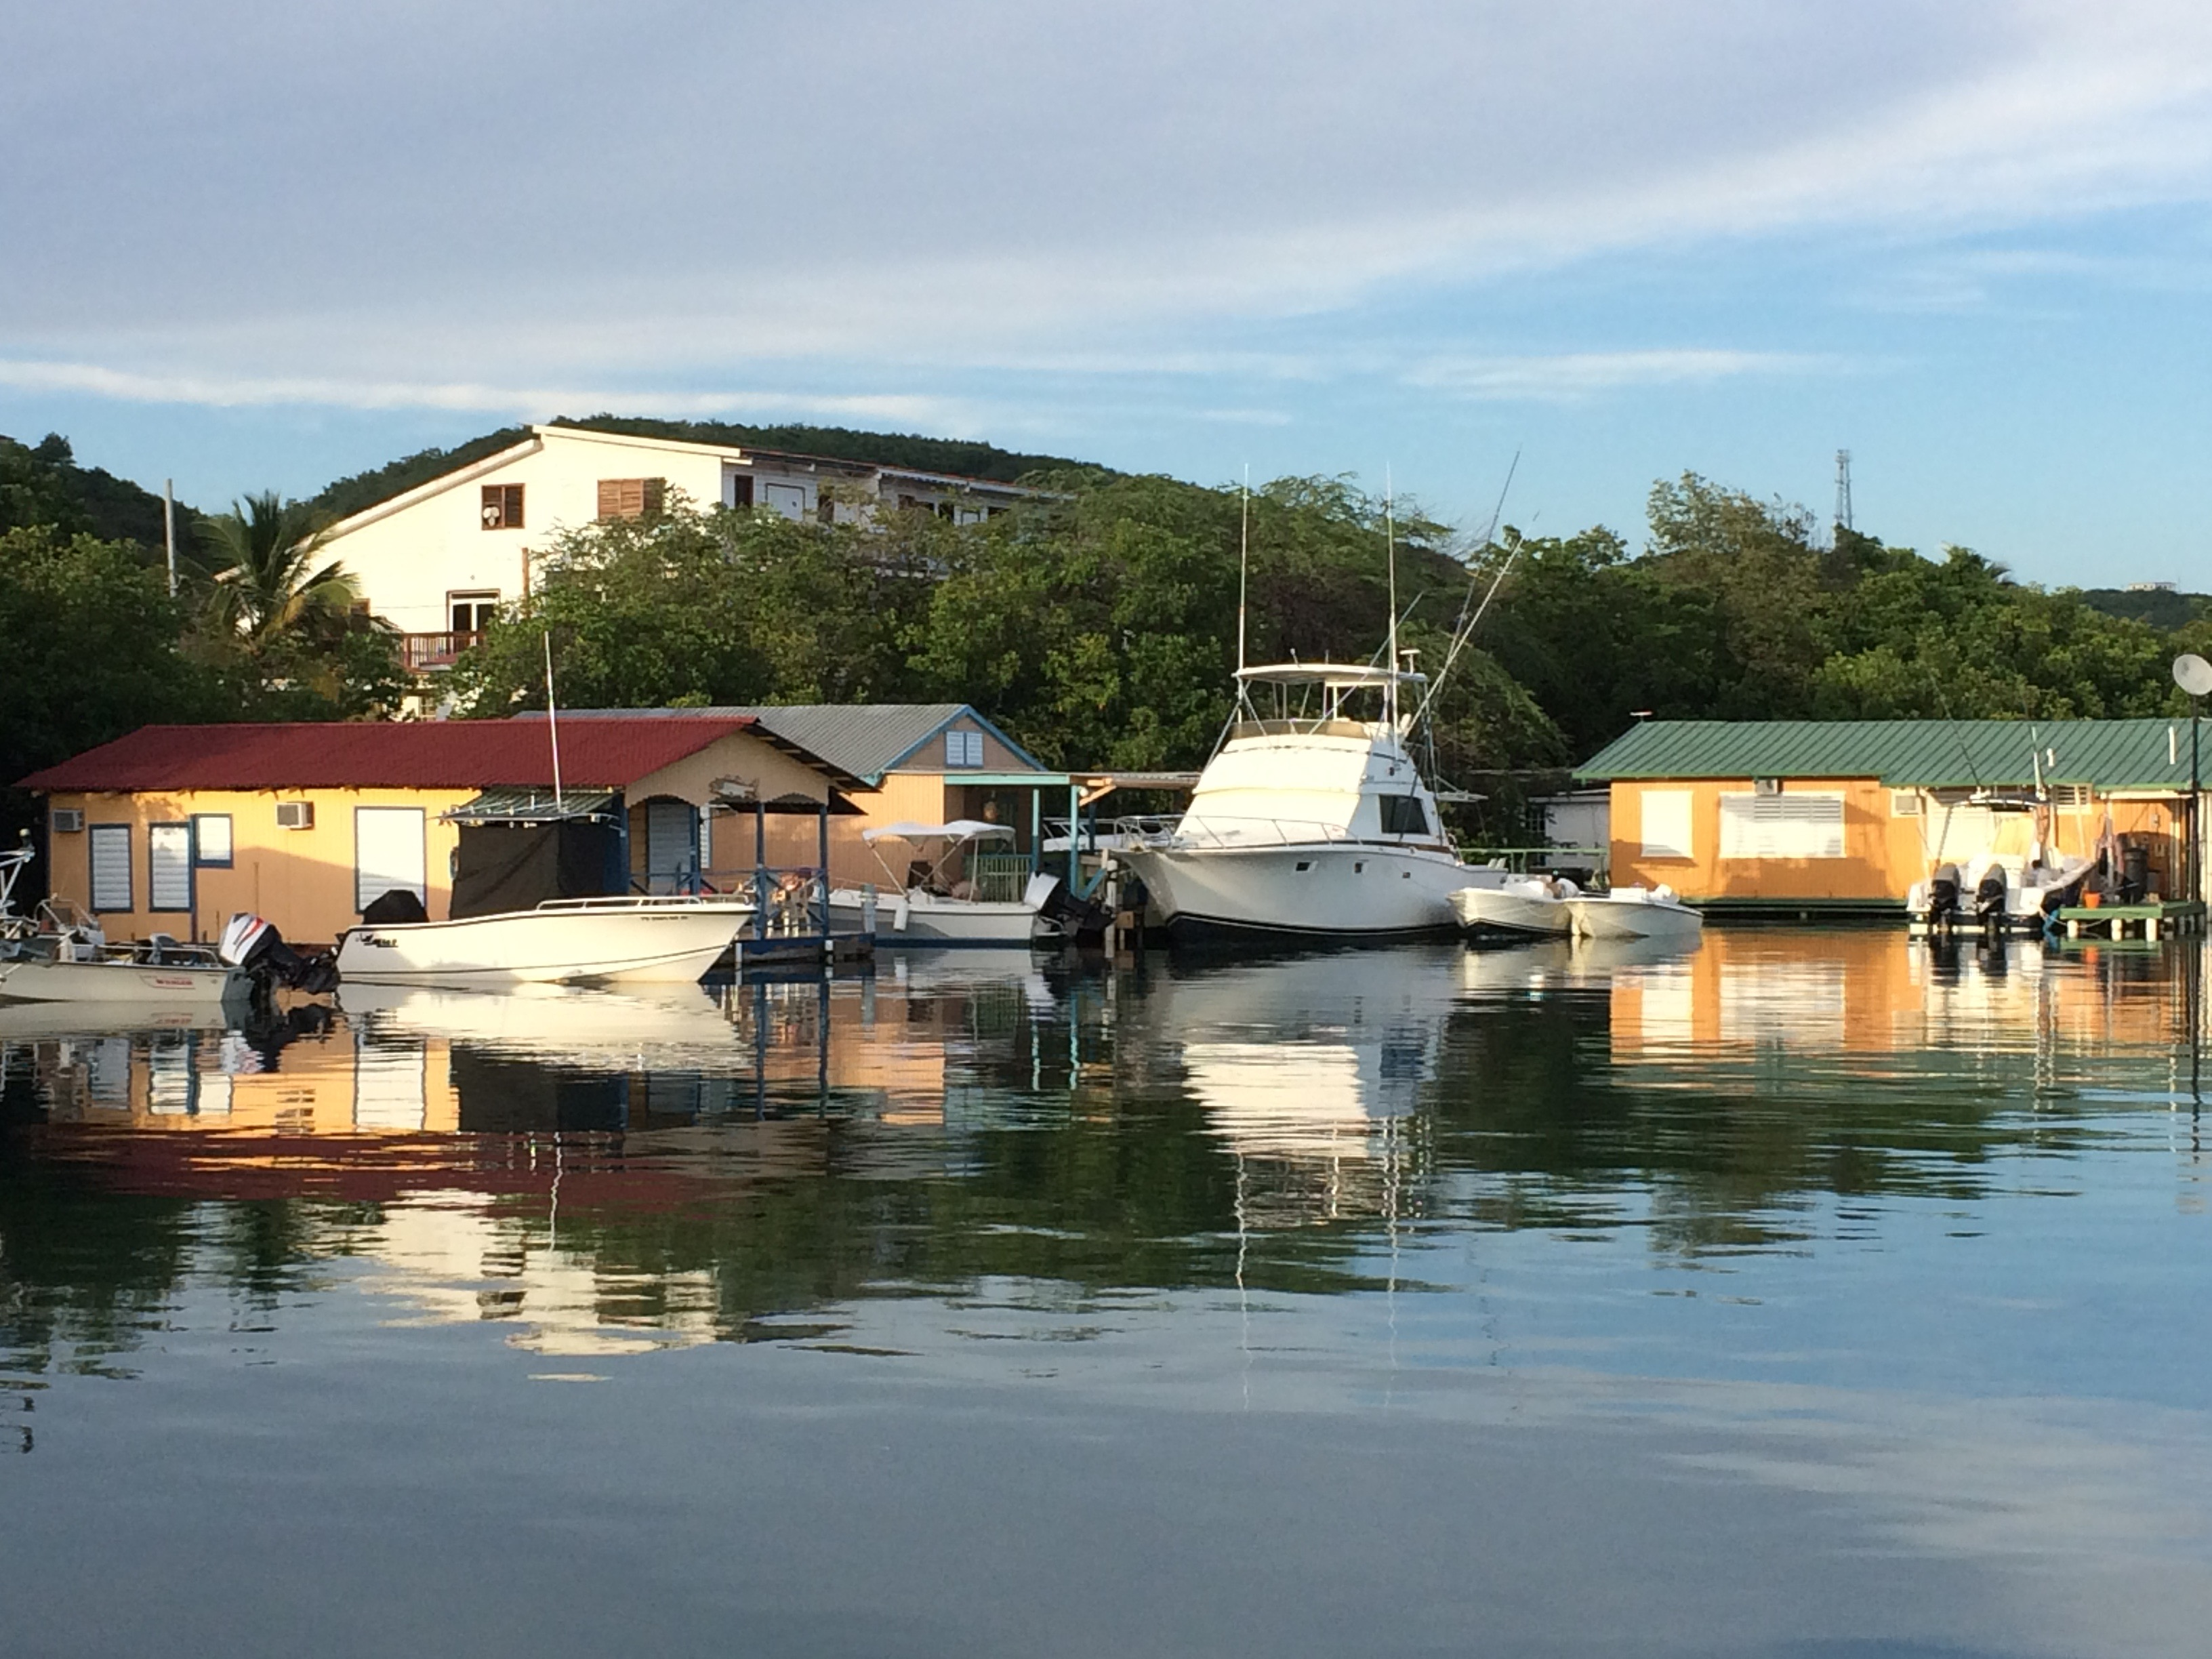 Boat houses in La Parguera, Lajas, Puerto Rico. Photo courtesy Alberto Marty.